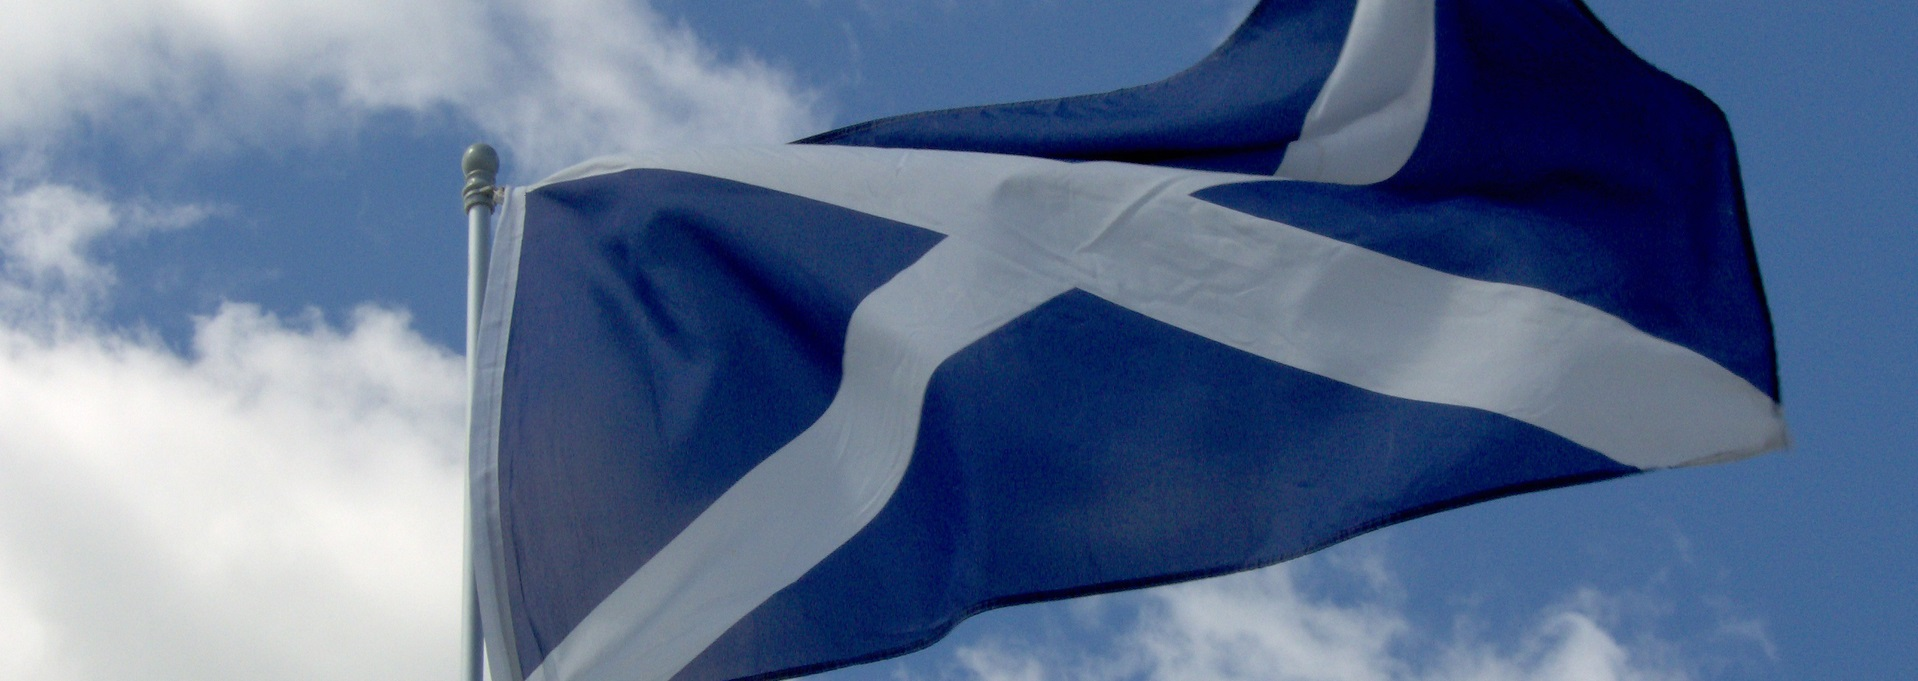 St Andrews cross Scottish flag flying against a blue sky with clouds